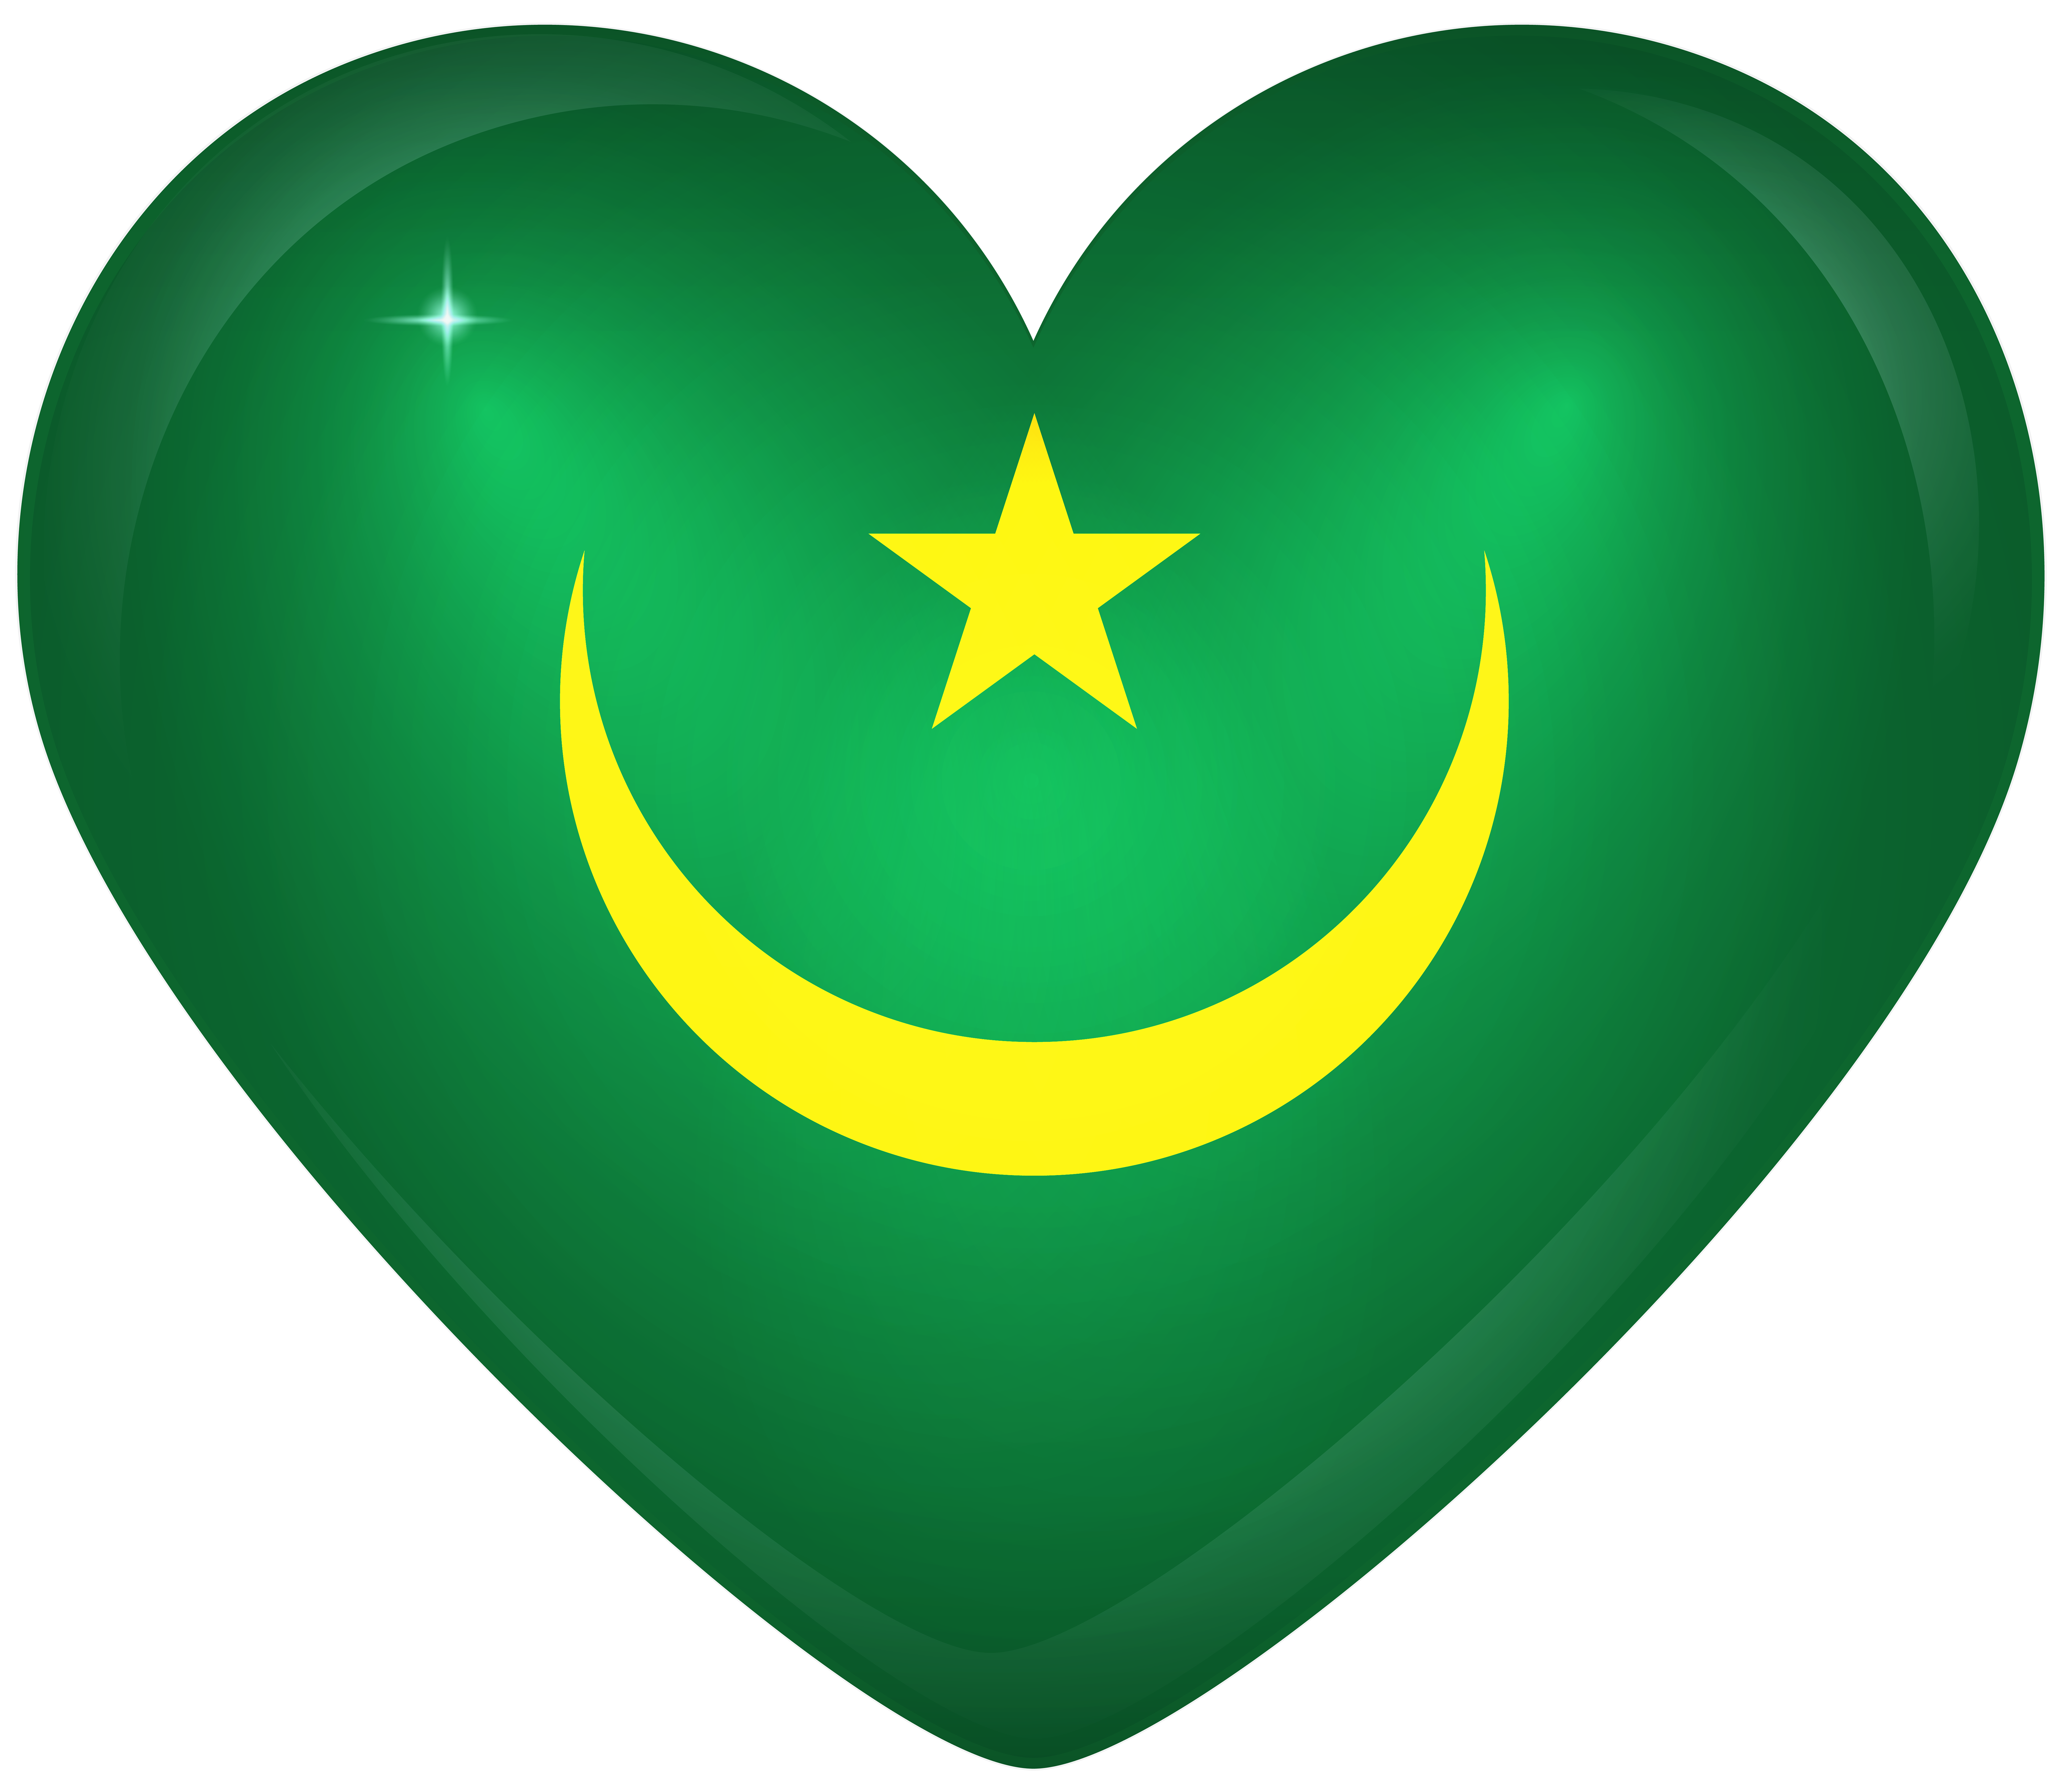 Mauritania large flag gallery. Clipart halloween heart